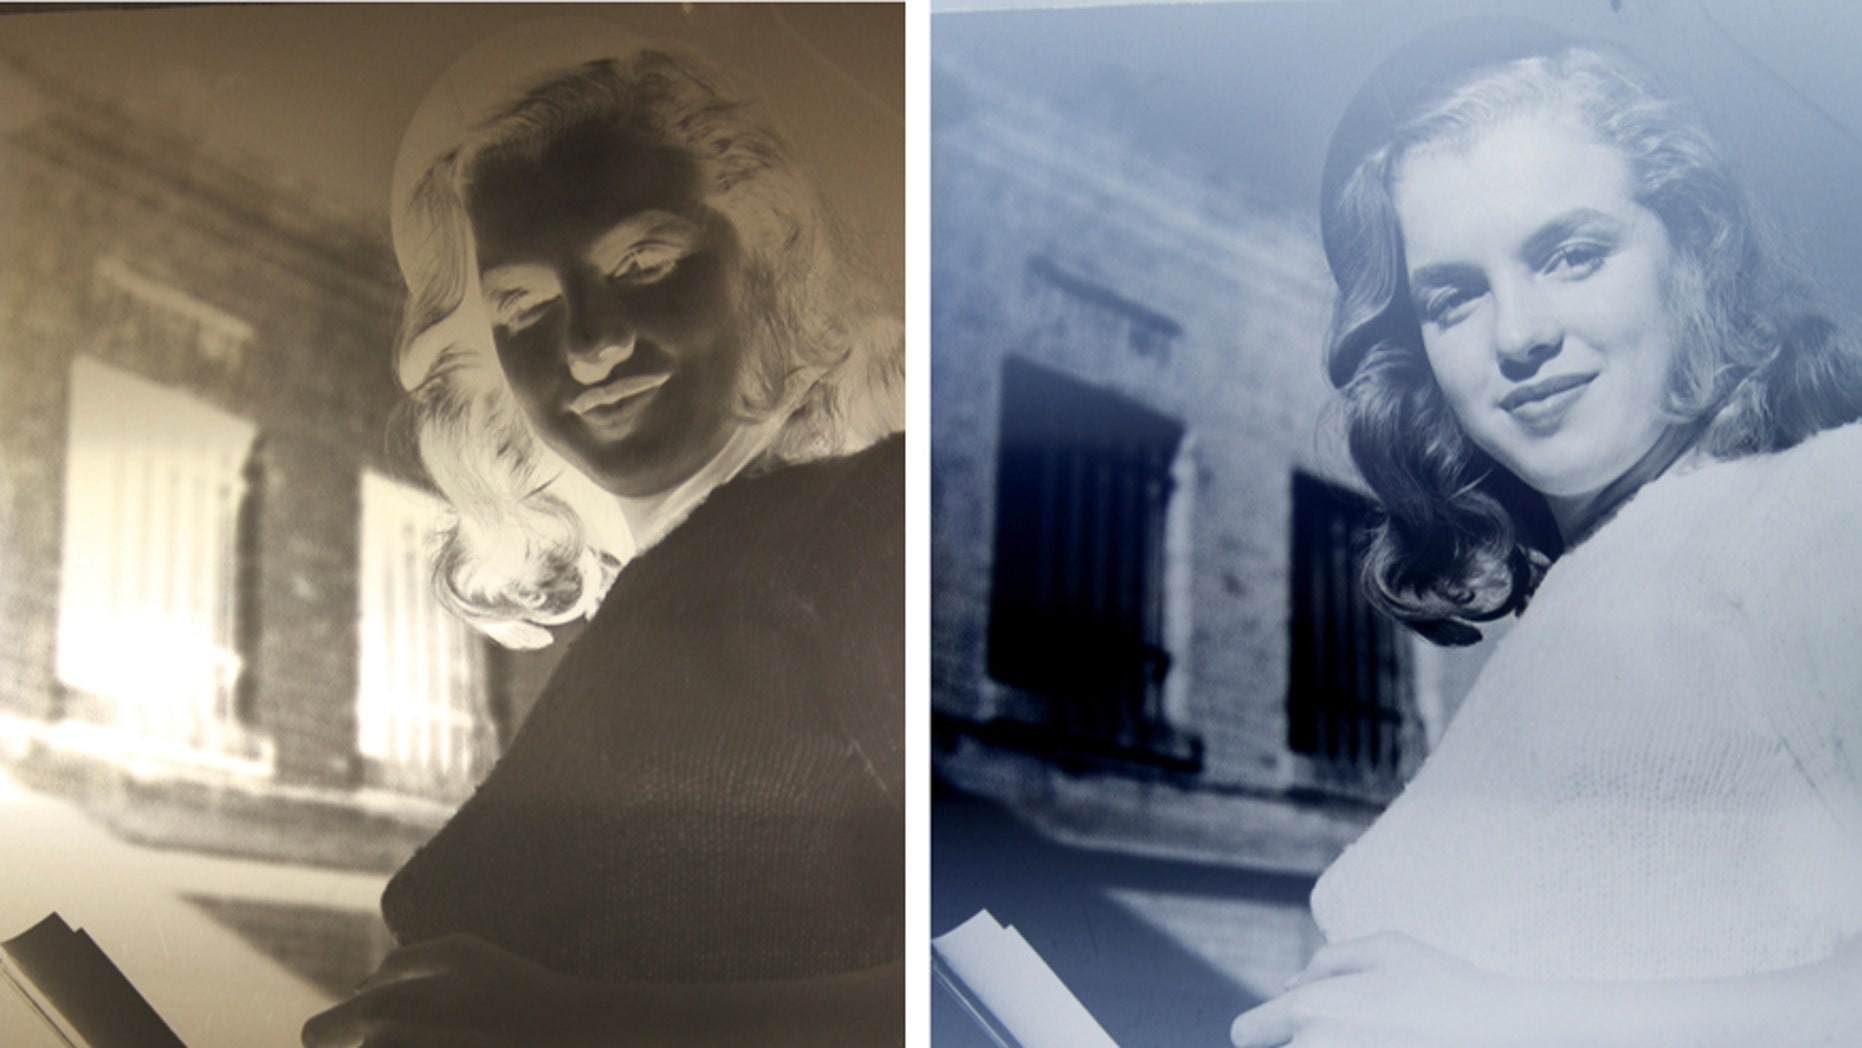 The negative and image from Marilyn Monroe's first modeling portfolio (Henry Aldridge and Son).